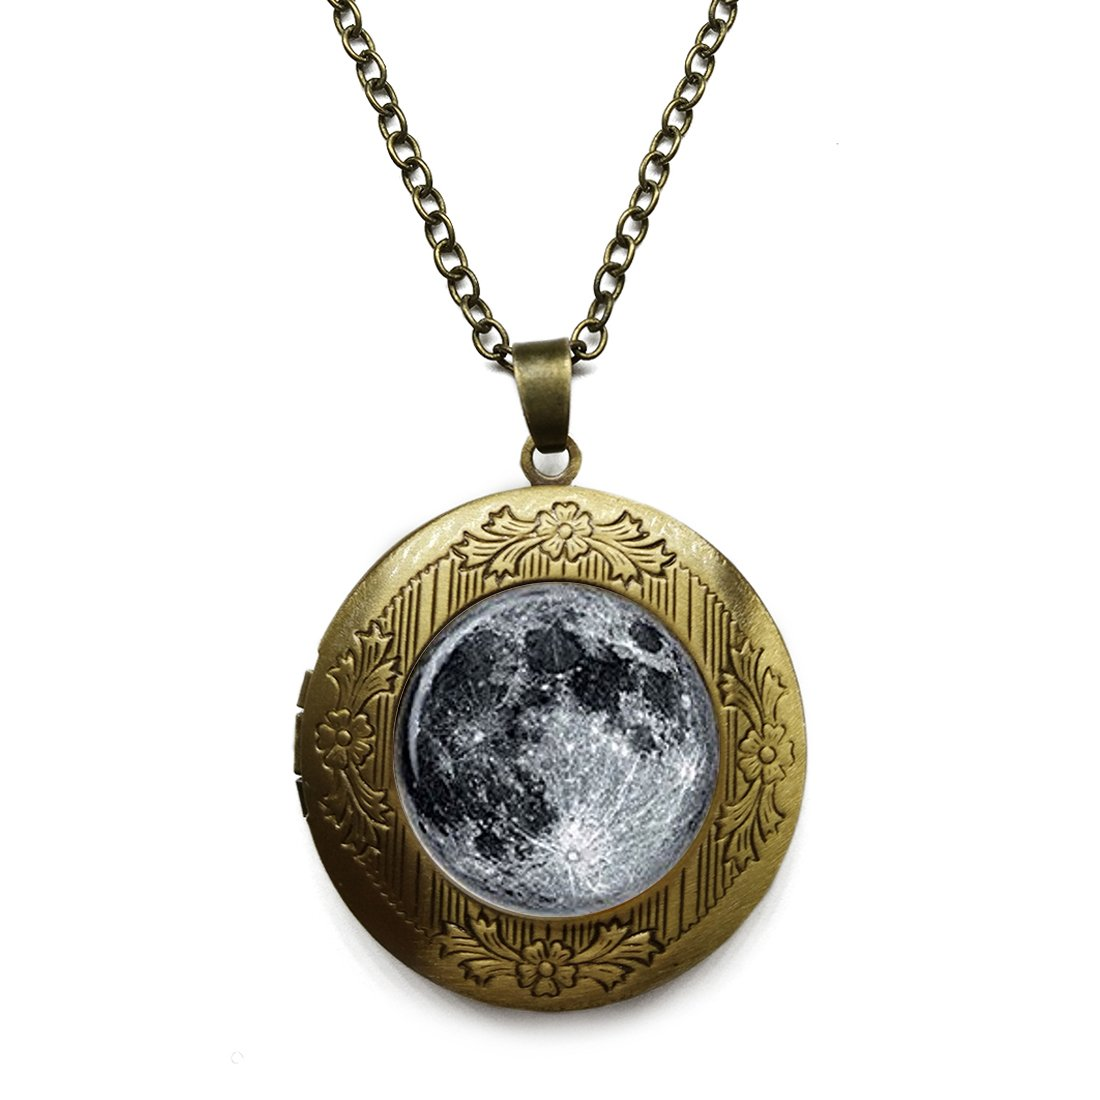 Vintage Bronze Tone Locket Picture Pendant Necklace Earth And Moon Included Free Brass Chain Gifts Personalized LooPoP CXC0622LooP-KF-LSZBS-0081